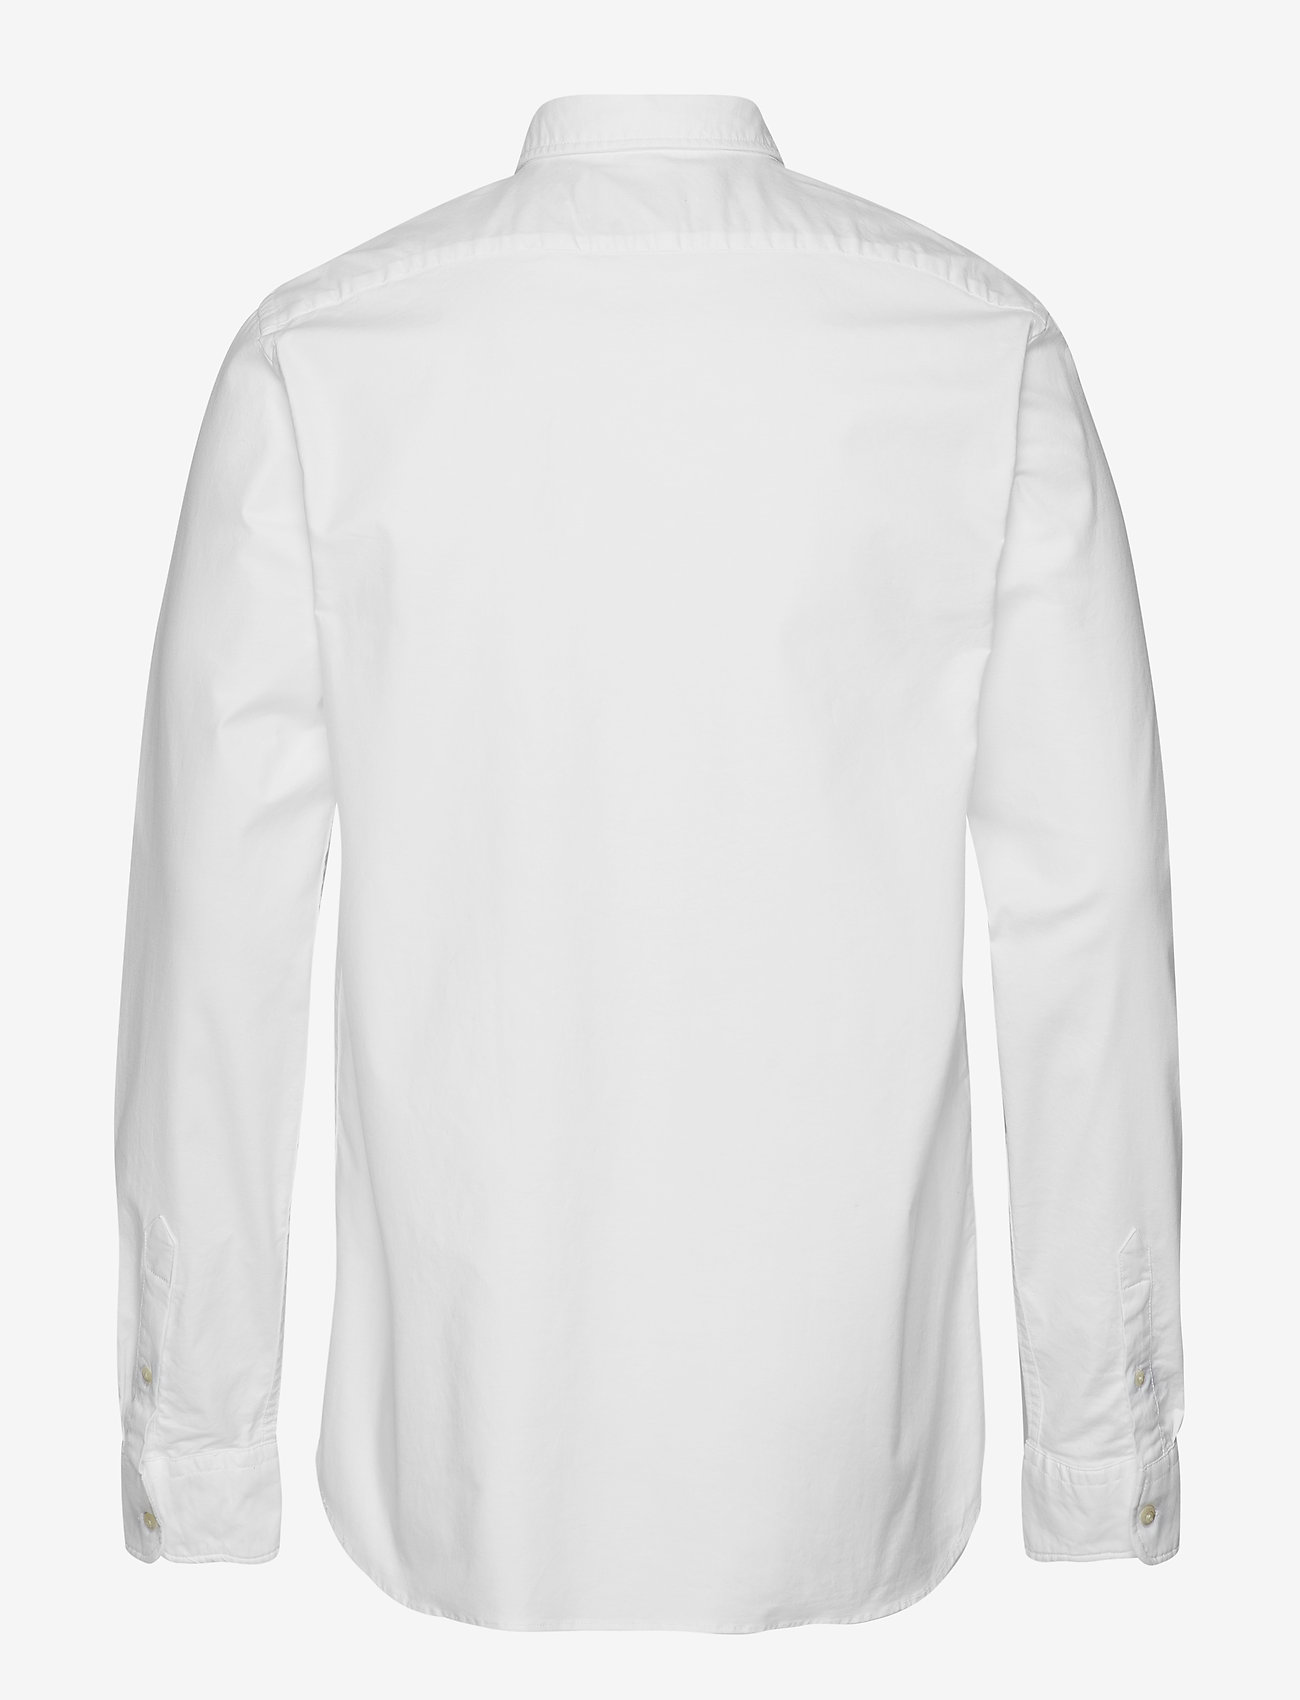 Scotch & Soda - NOS Oxford shirt regular fit button down collar - chemises basiques - white - 1